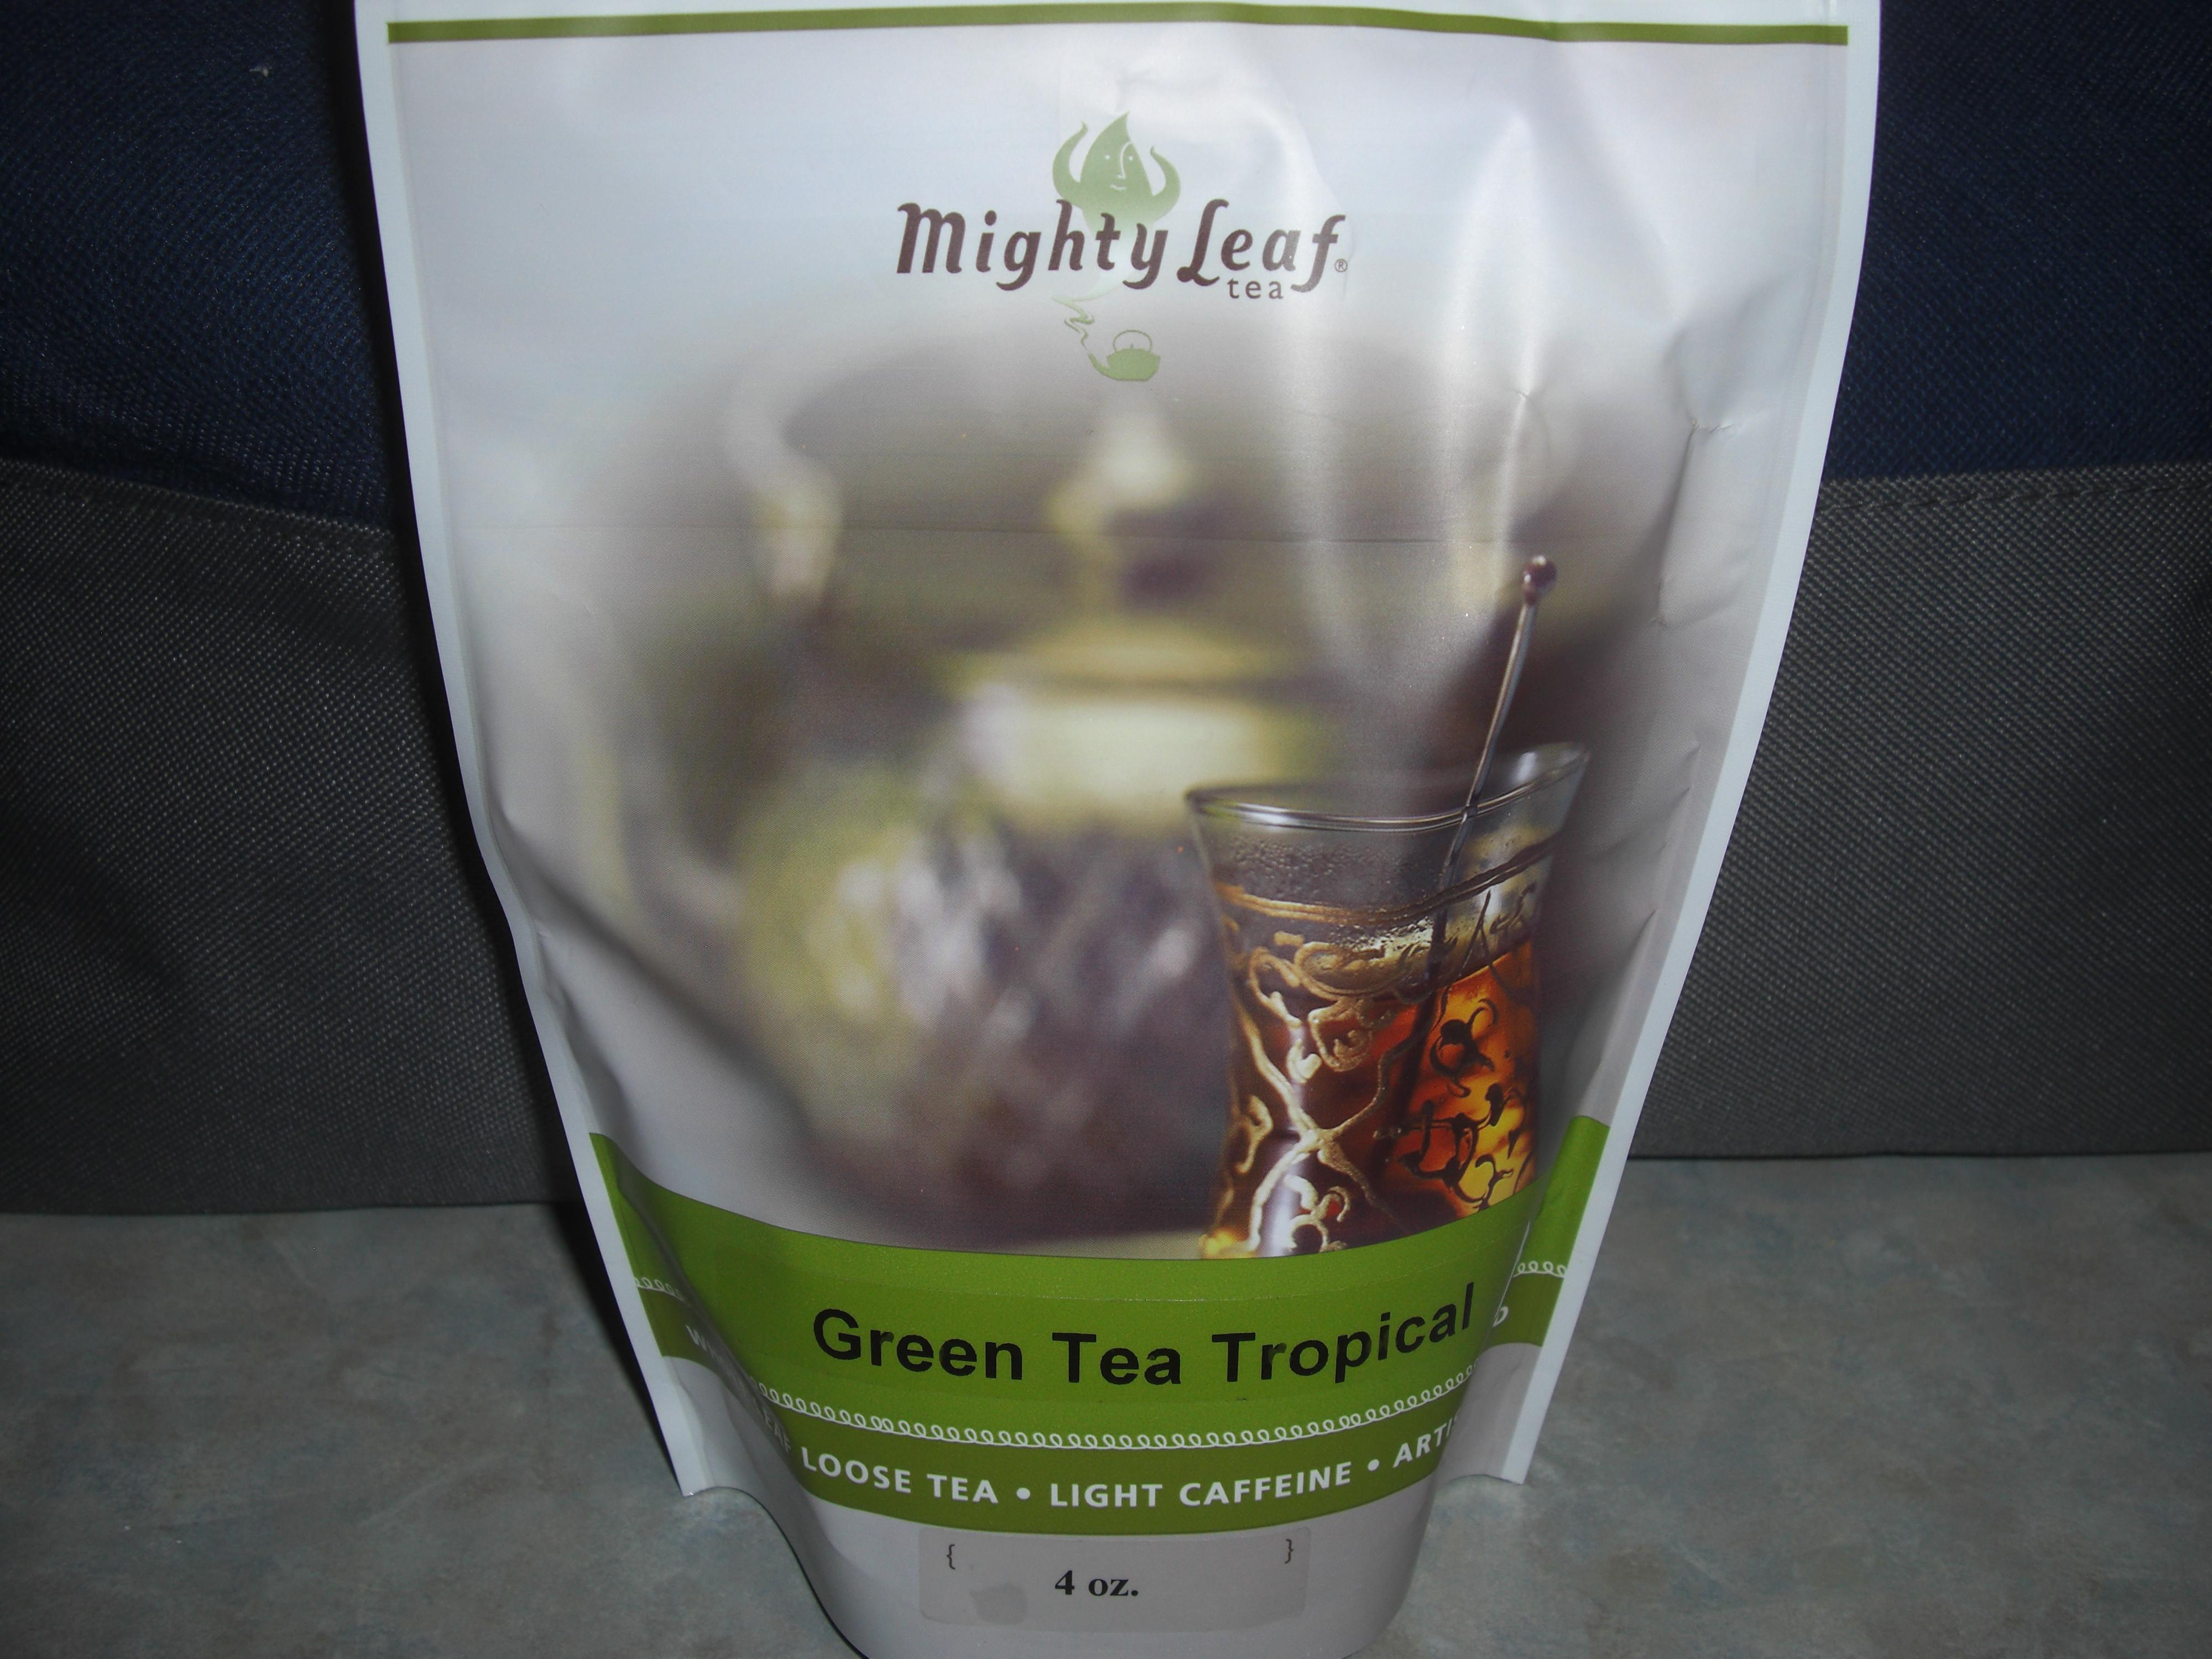 Green Tea Tropical in Loose Tea Top Rated at Mighty Leaf